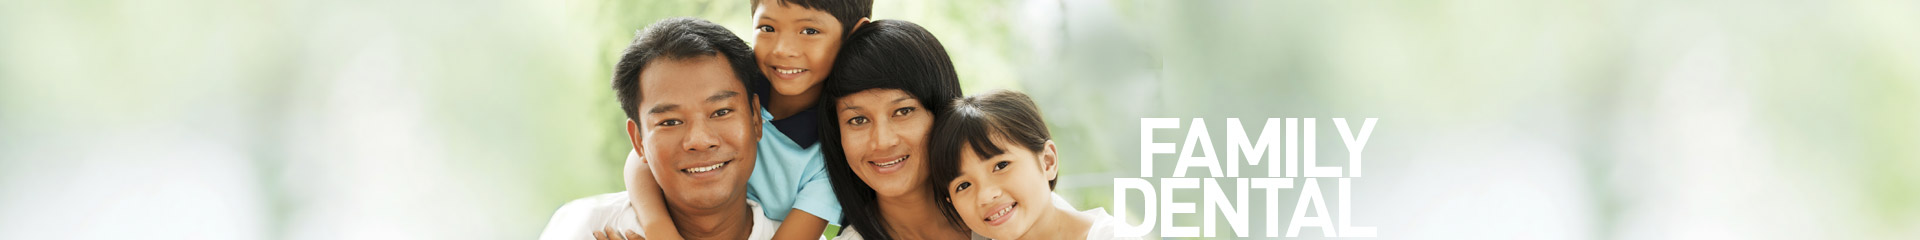 FAMILY DENTAL CARE AT Pearl Dental